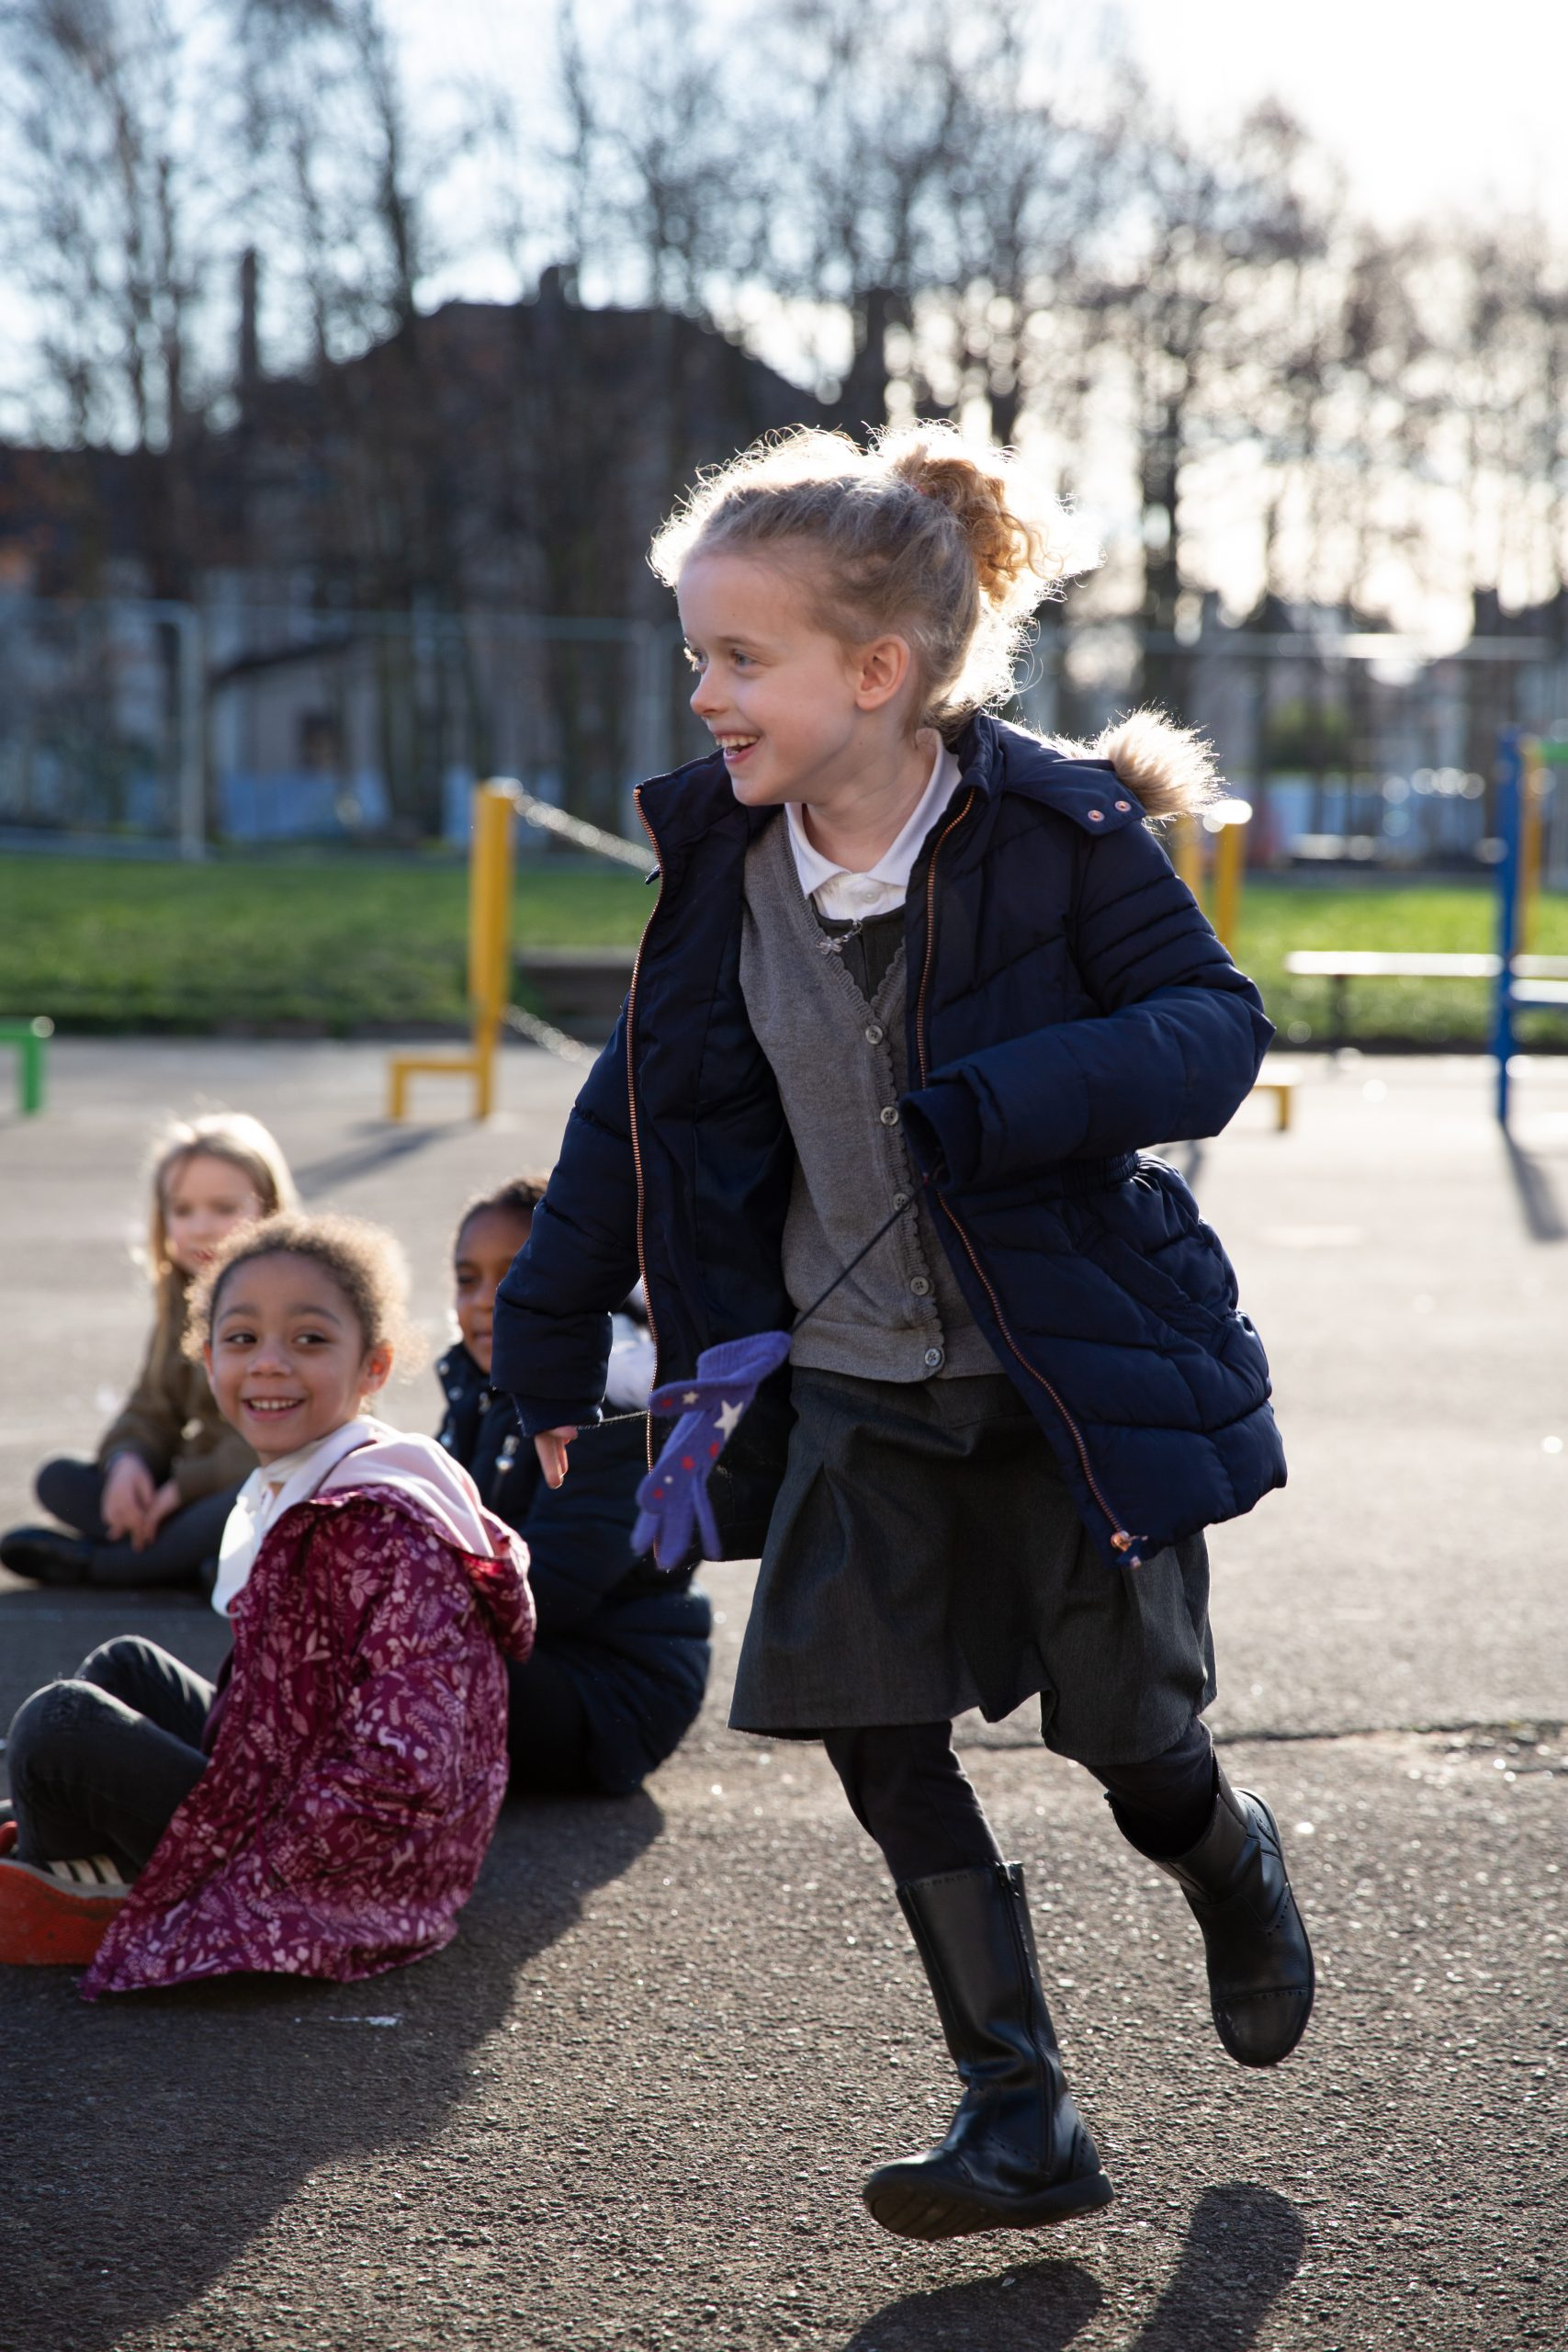 a young girl is running around her friends in a playground